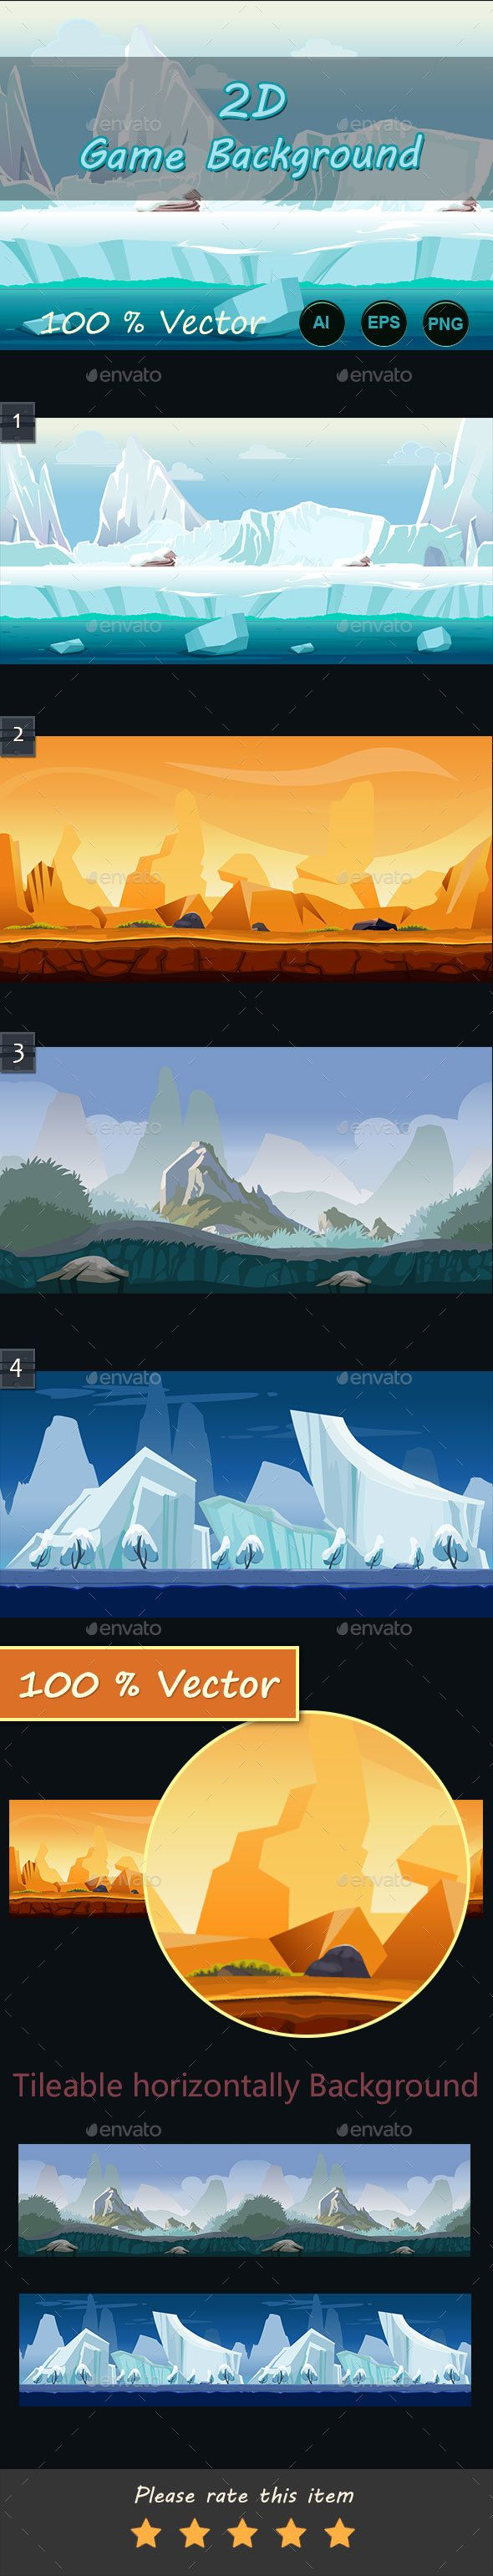 2d game Backgrounds You can use this background for your game application/project. It suits for game developers, or indie game developers who want to make looping GUI cartoon game for Android or iOS. The Game background is made with 100% vector. You can edit it with illustrator software. Best for action, shooting, adventure and other side-scrolling game platform.